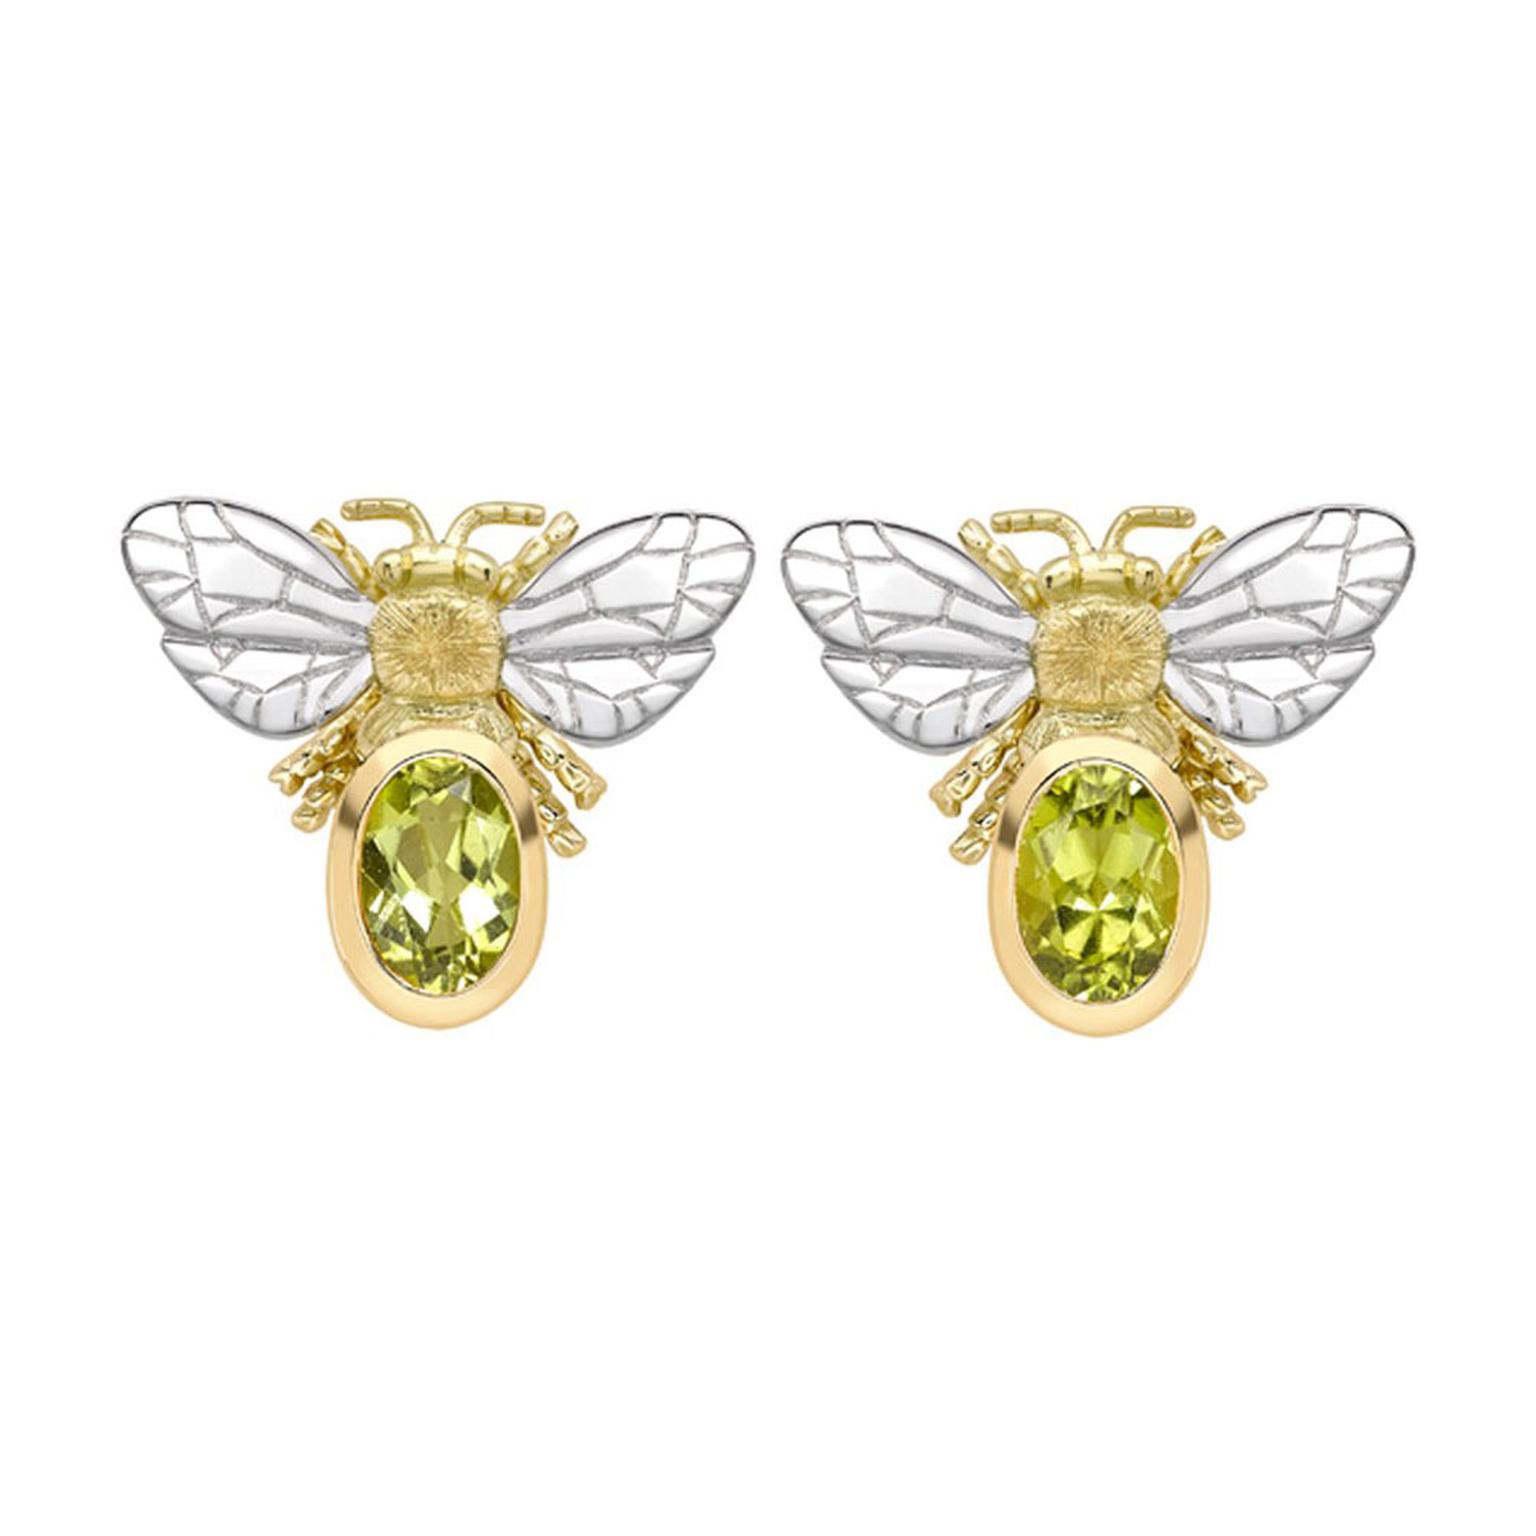 lg jewelry diamonds peridot axd chalcedony with to gold earrings zoom hover